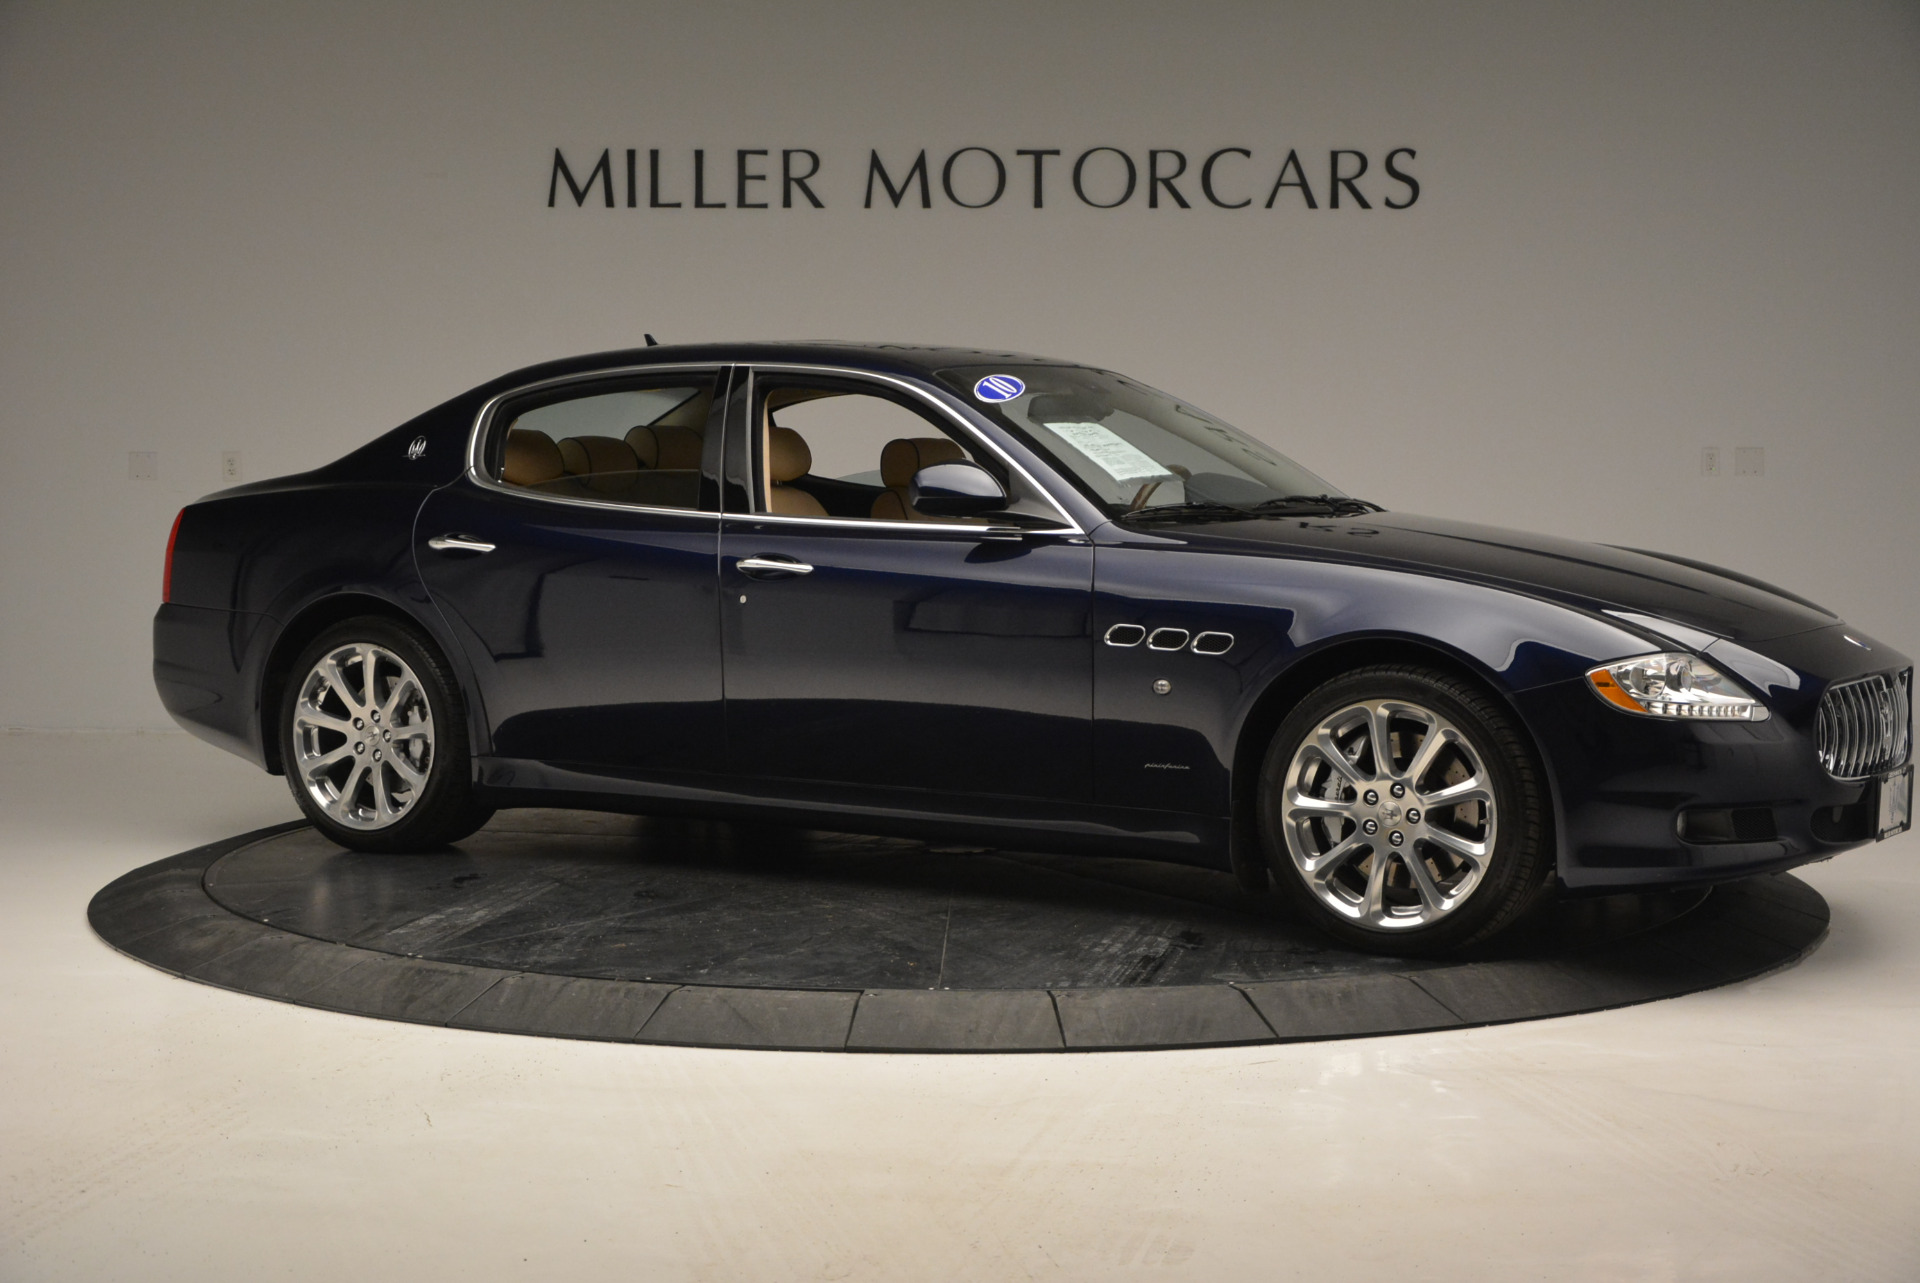 Used 2010 Maserati Quattroporte S For Sale In Westport, CT 795_p10